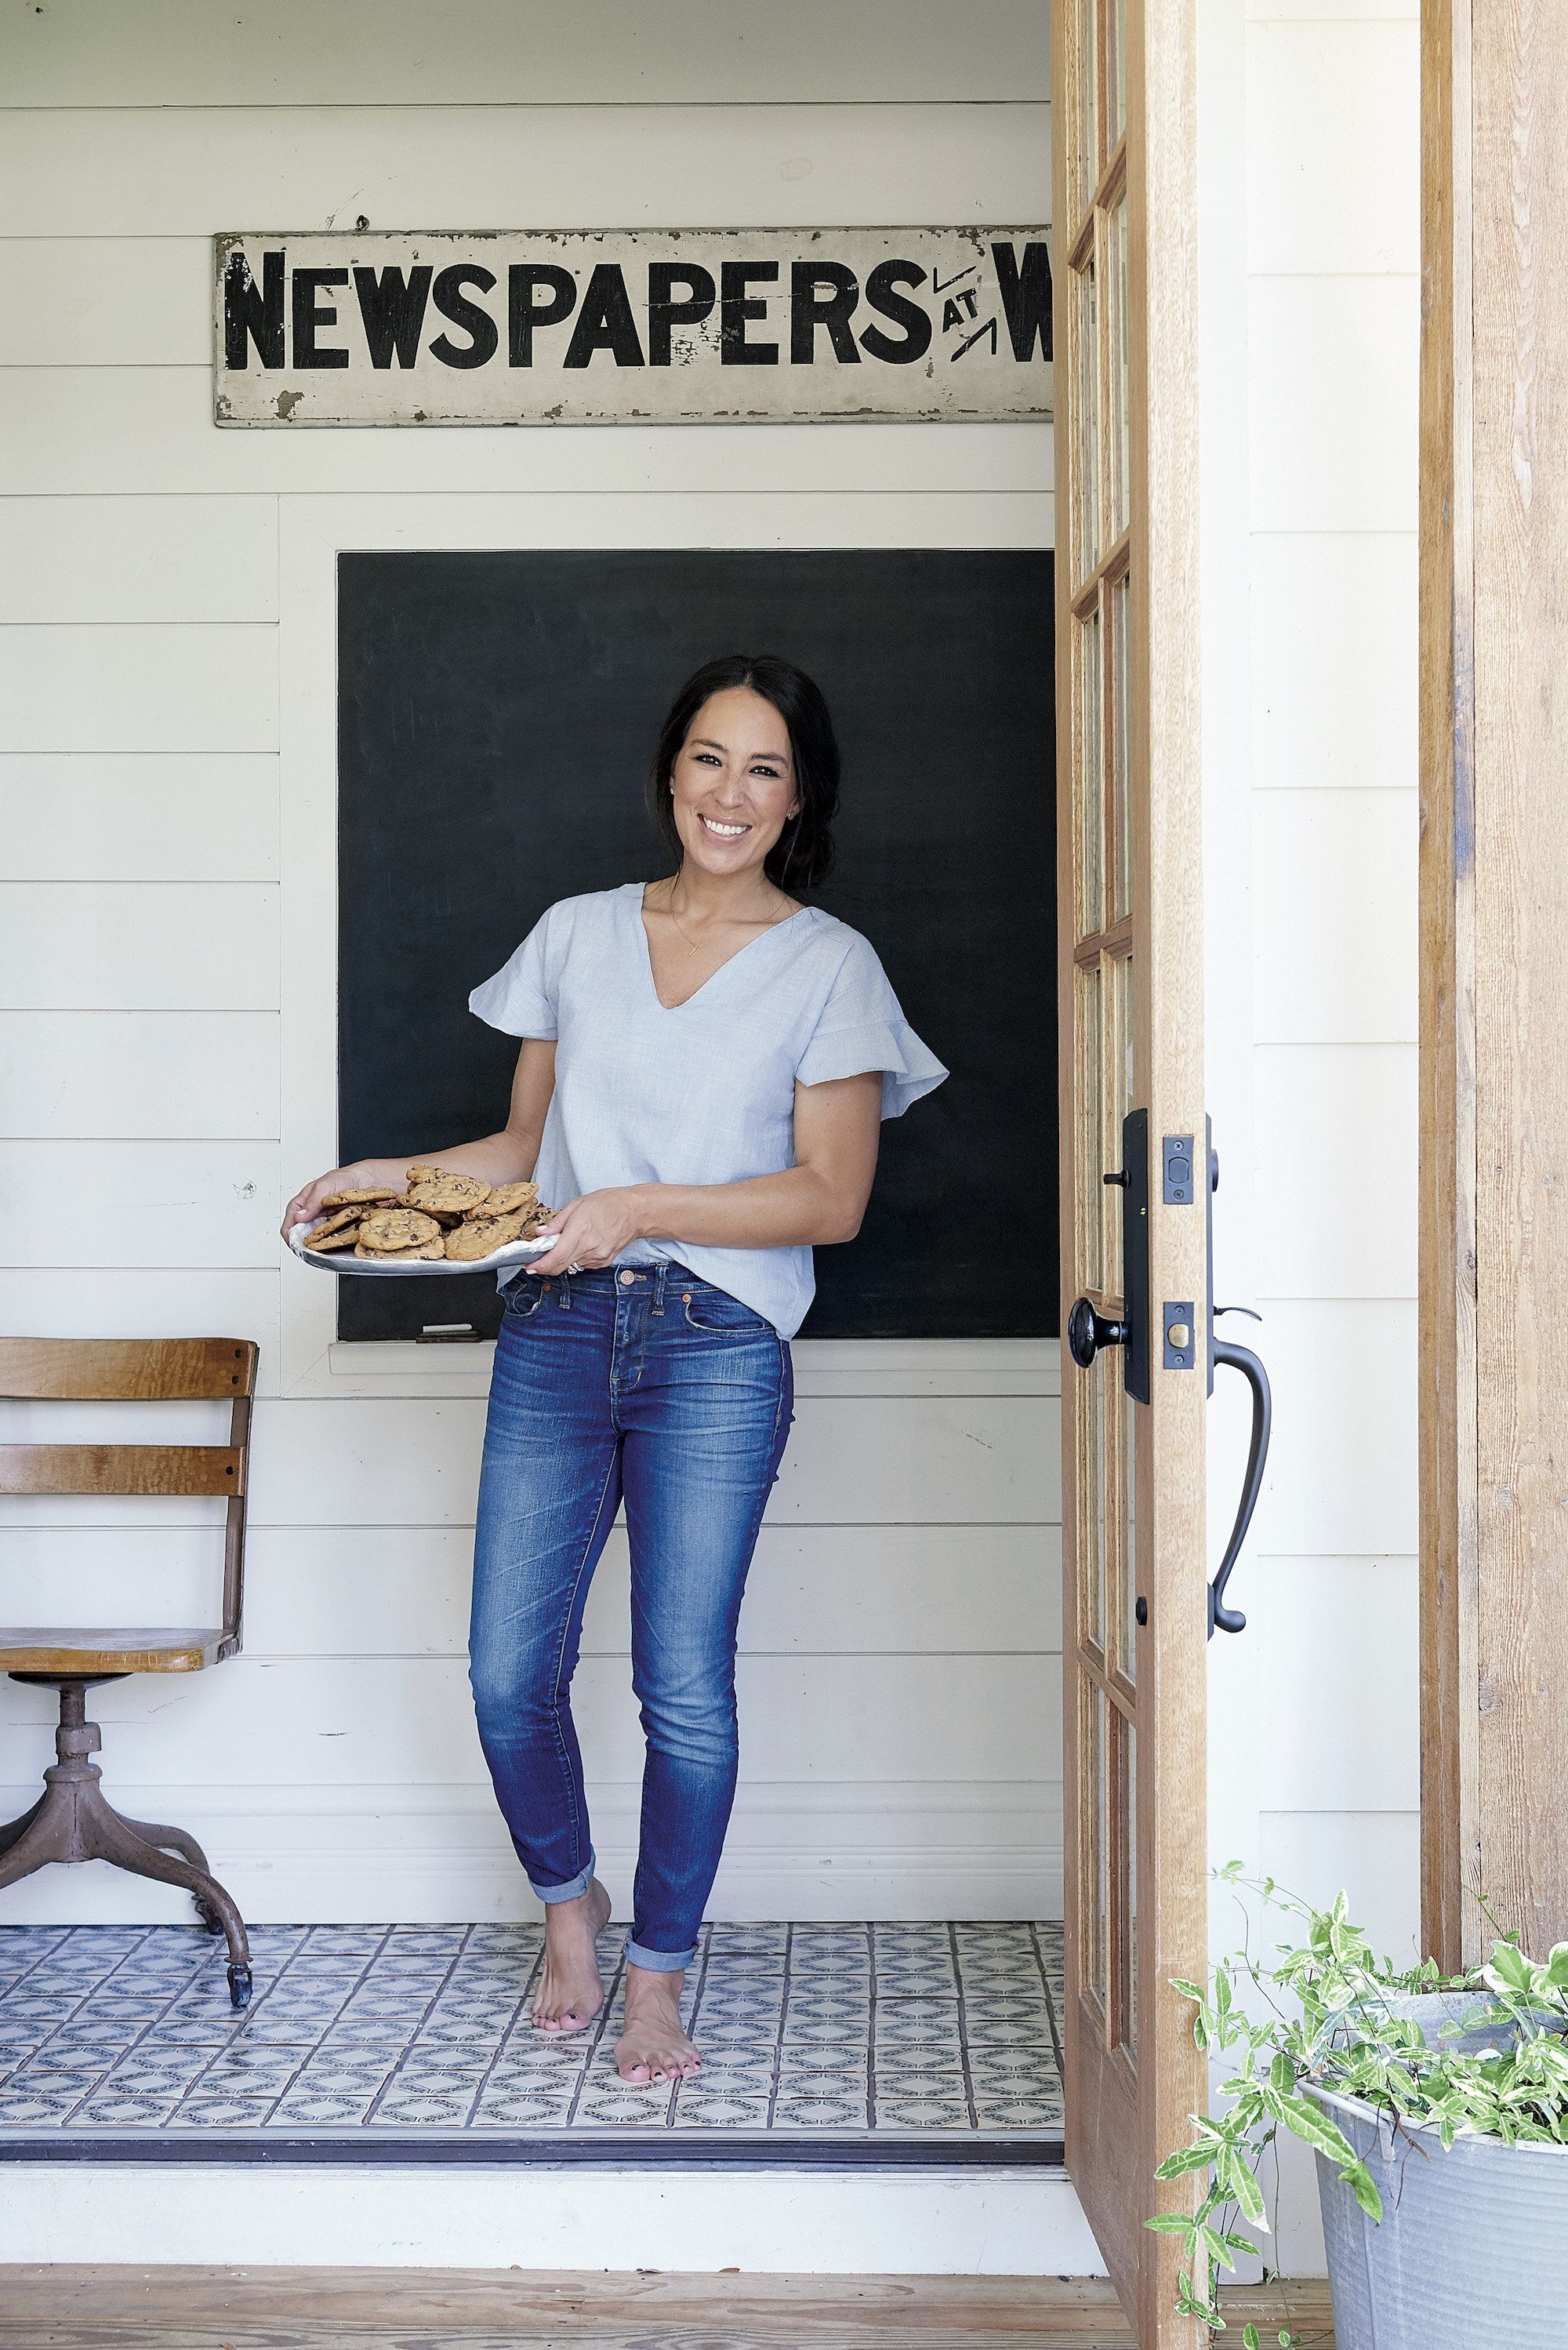 Joanna Gaines' recipe for chocolate chip cookies uses less butter than most.